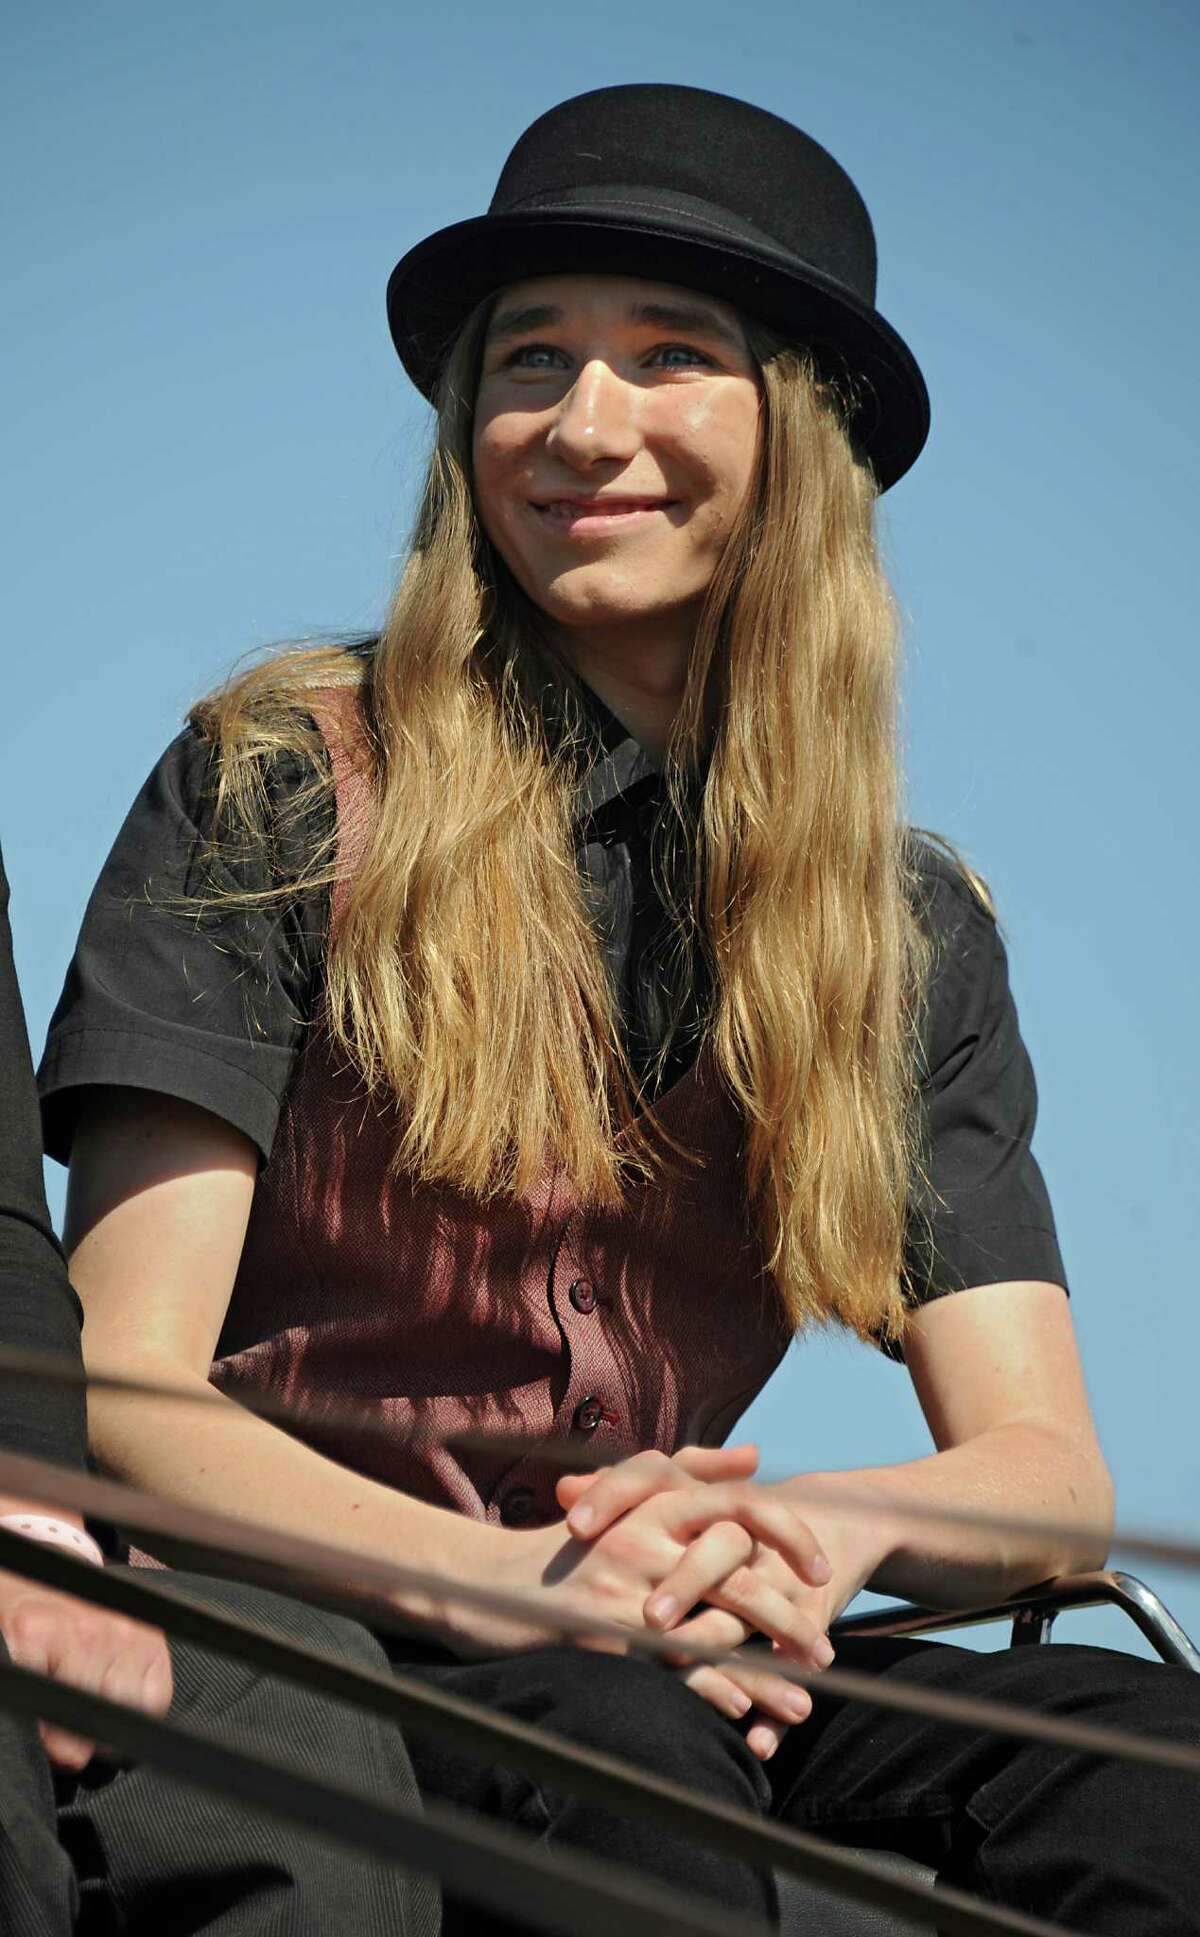 Fultonville?s own Sawyer Fredericks arrives to Fonda Speedway on Wednesday, May 6, 2015 in Fonda, N.Y. The 16-year-old singer/songwriter is one of the final six contestants on NBC?s show The Voice. (Lori Van Buren / Times Union)